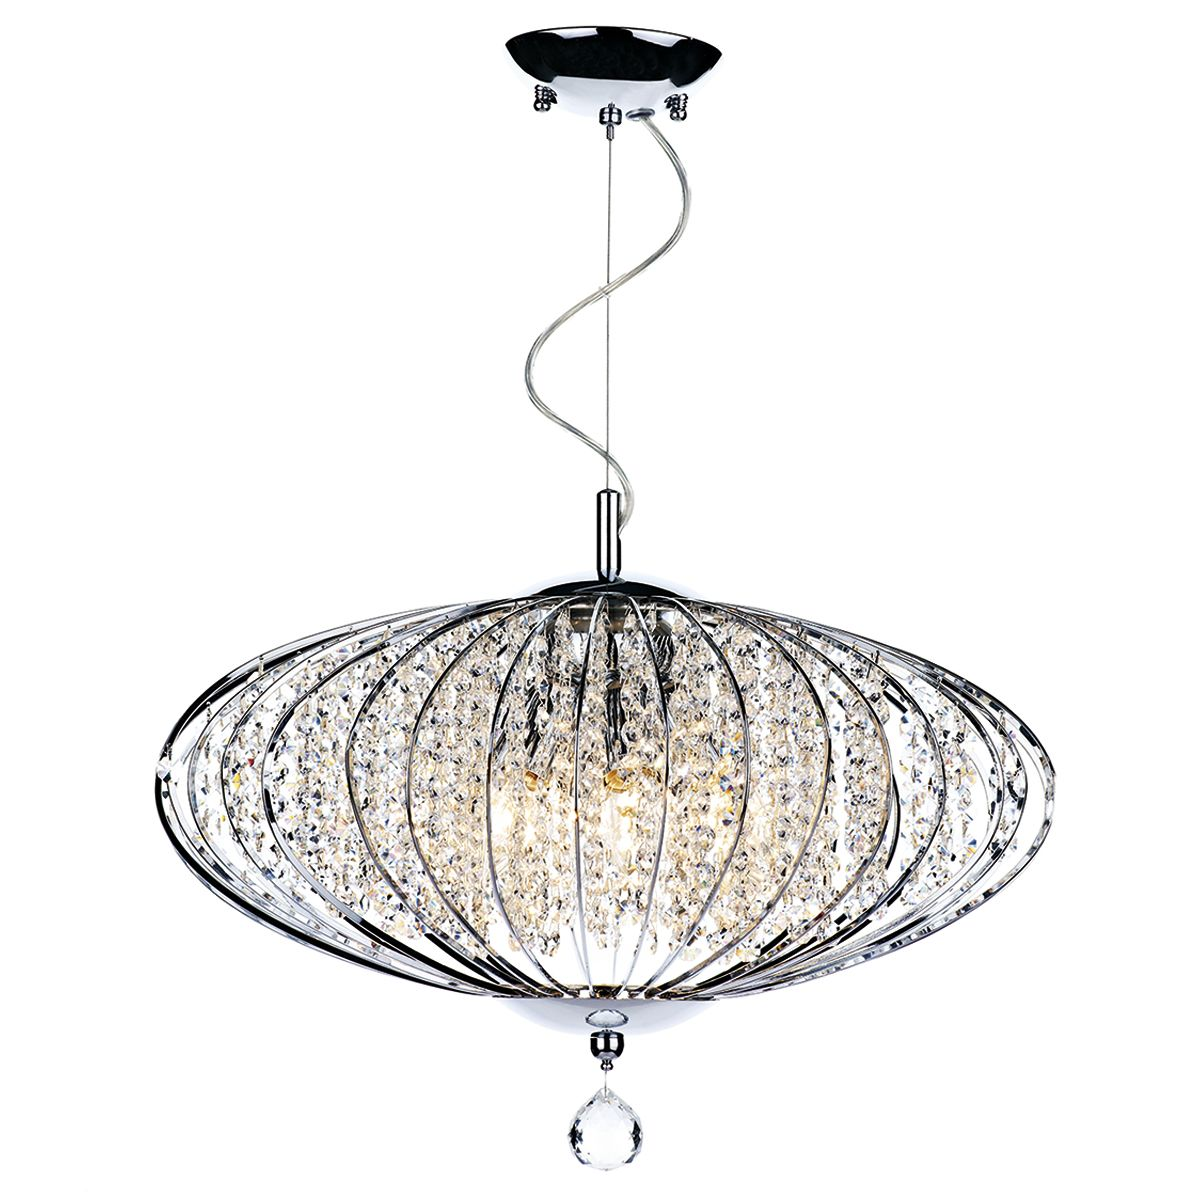 Adriatic 5 Bulb Polished Chrome Pendant Light